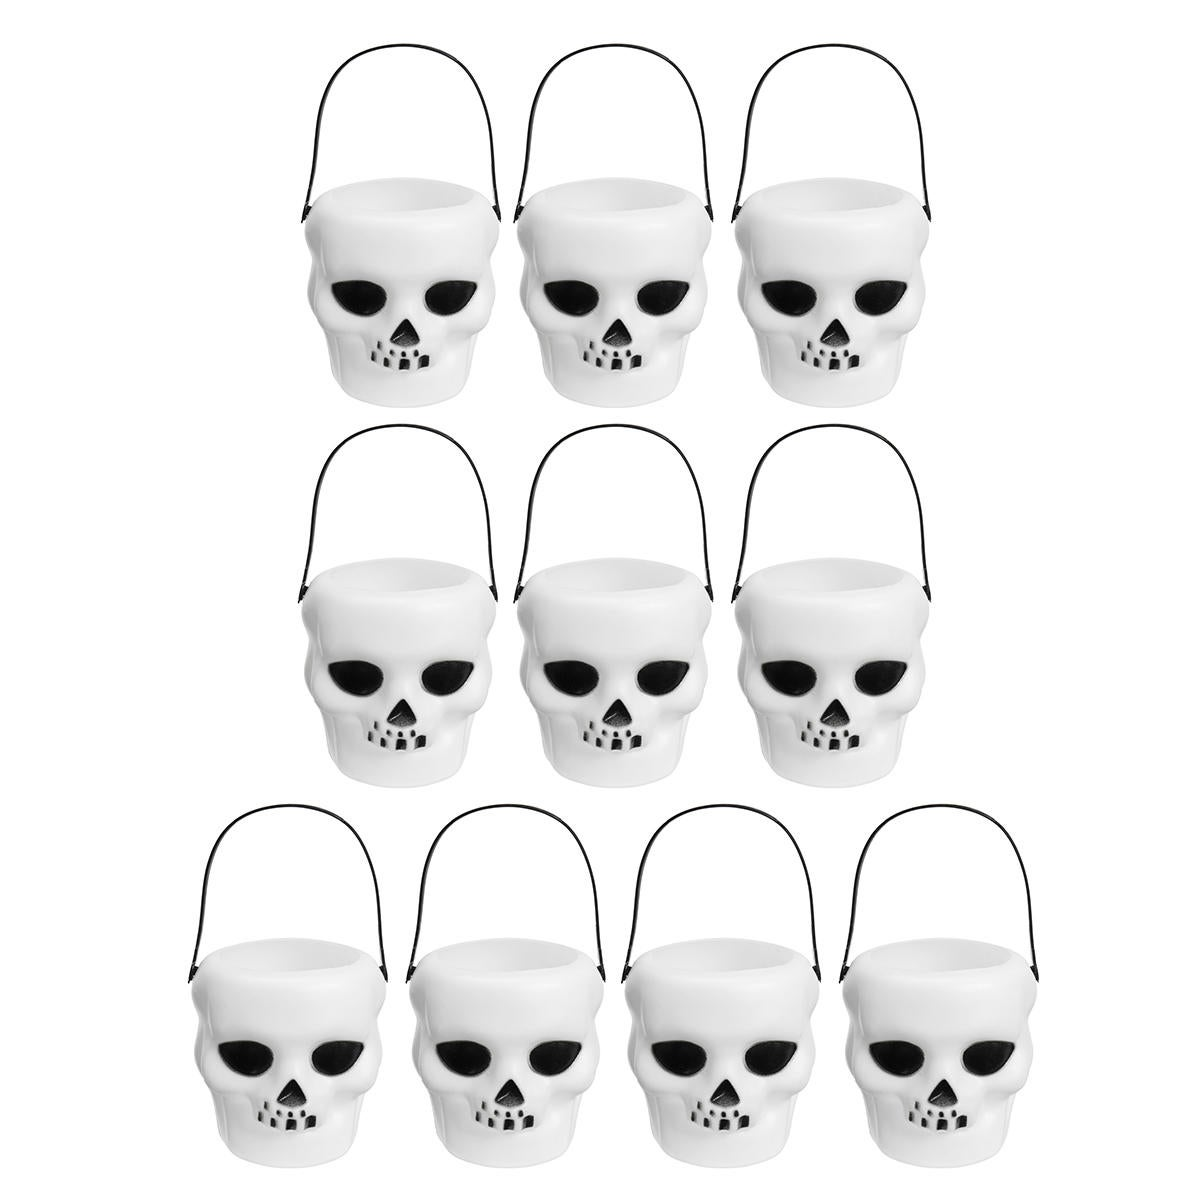 10pcs Halloween Cauldron Witch Skull Multi Purposed Candy Holder Planter Pot Party Decorations 6*5.5 SIZE